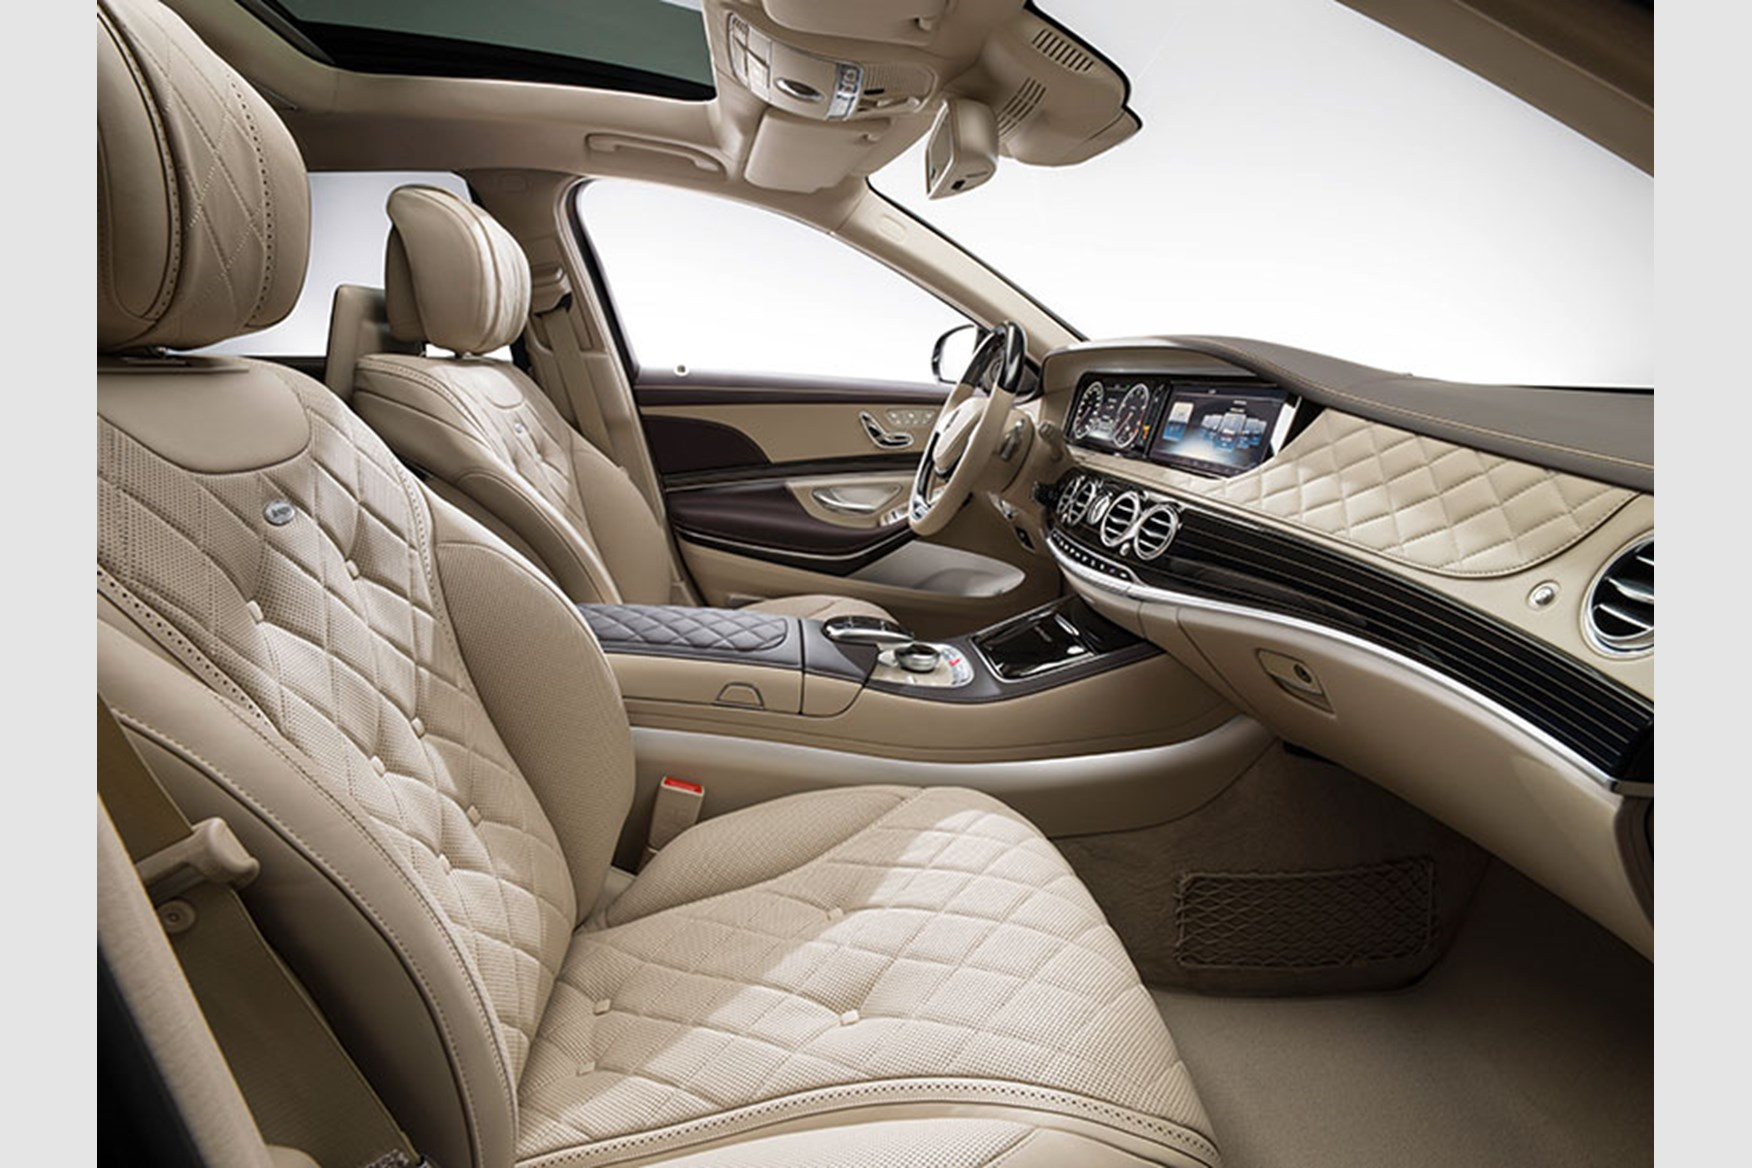 2018 maybach coupe. modren 2018 mercedes maybach s600 limo at 2014 la auto show by car magazine intended 2018 maybach coupe c